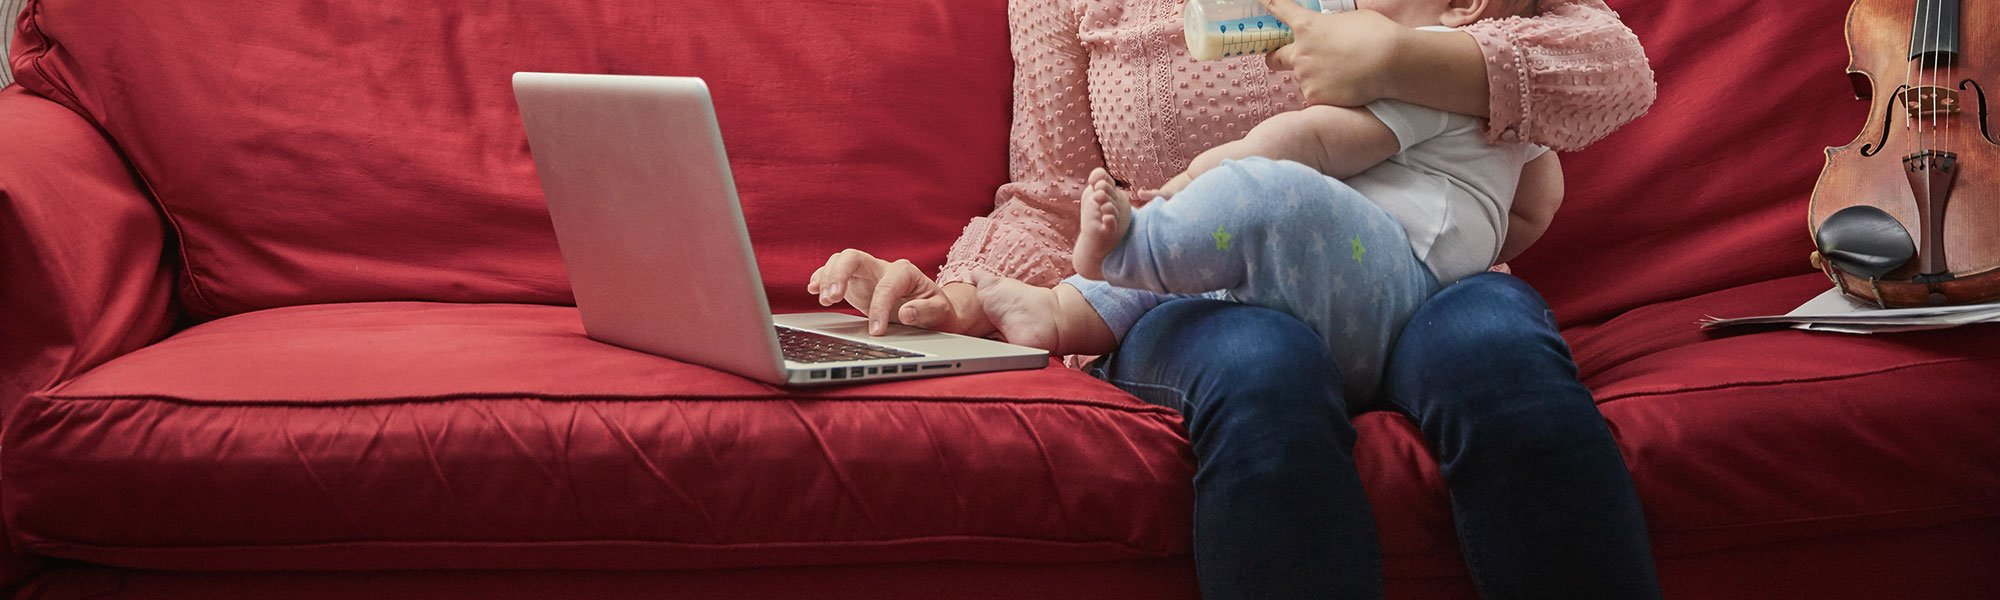 Mother on couch holding a baby and using a laptop